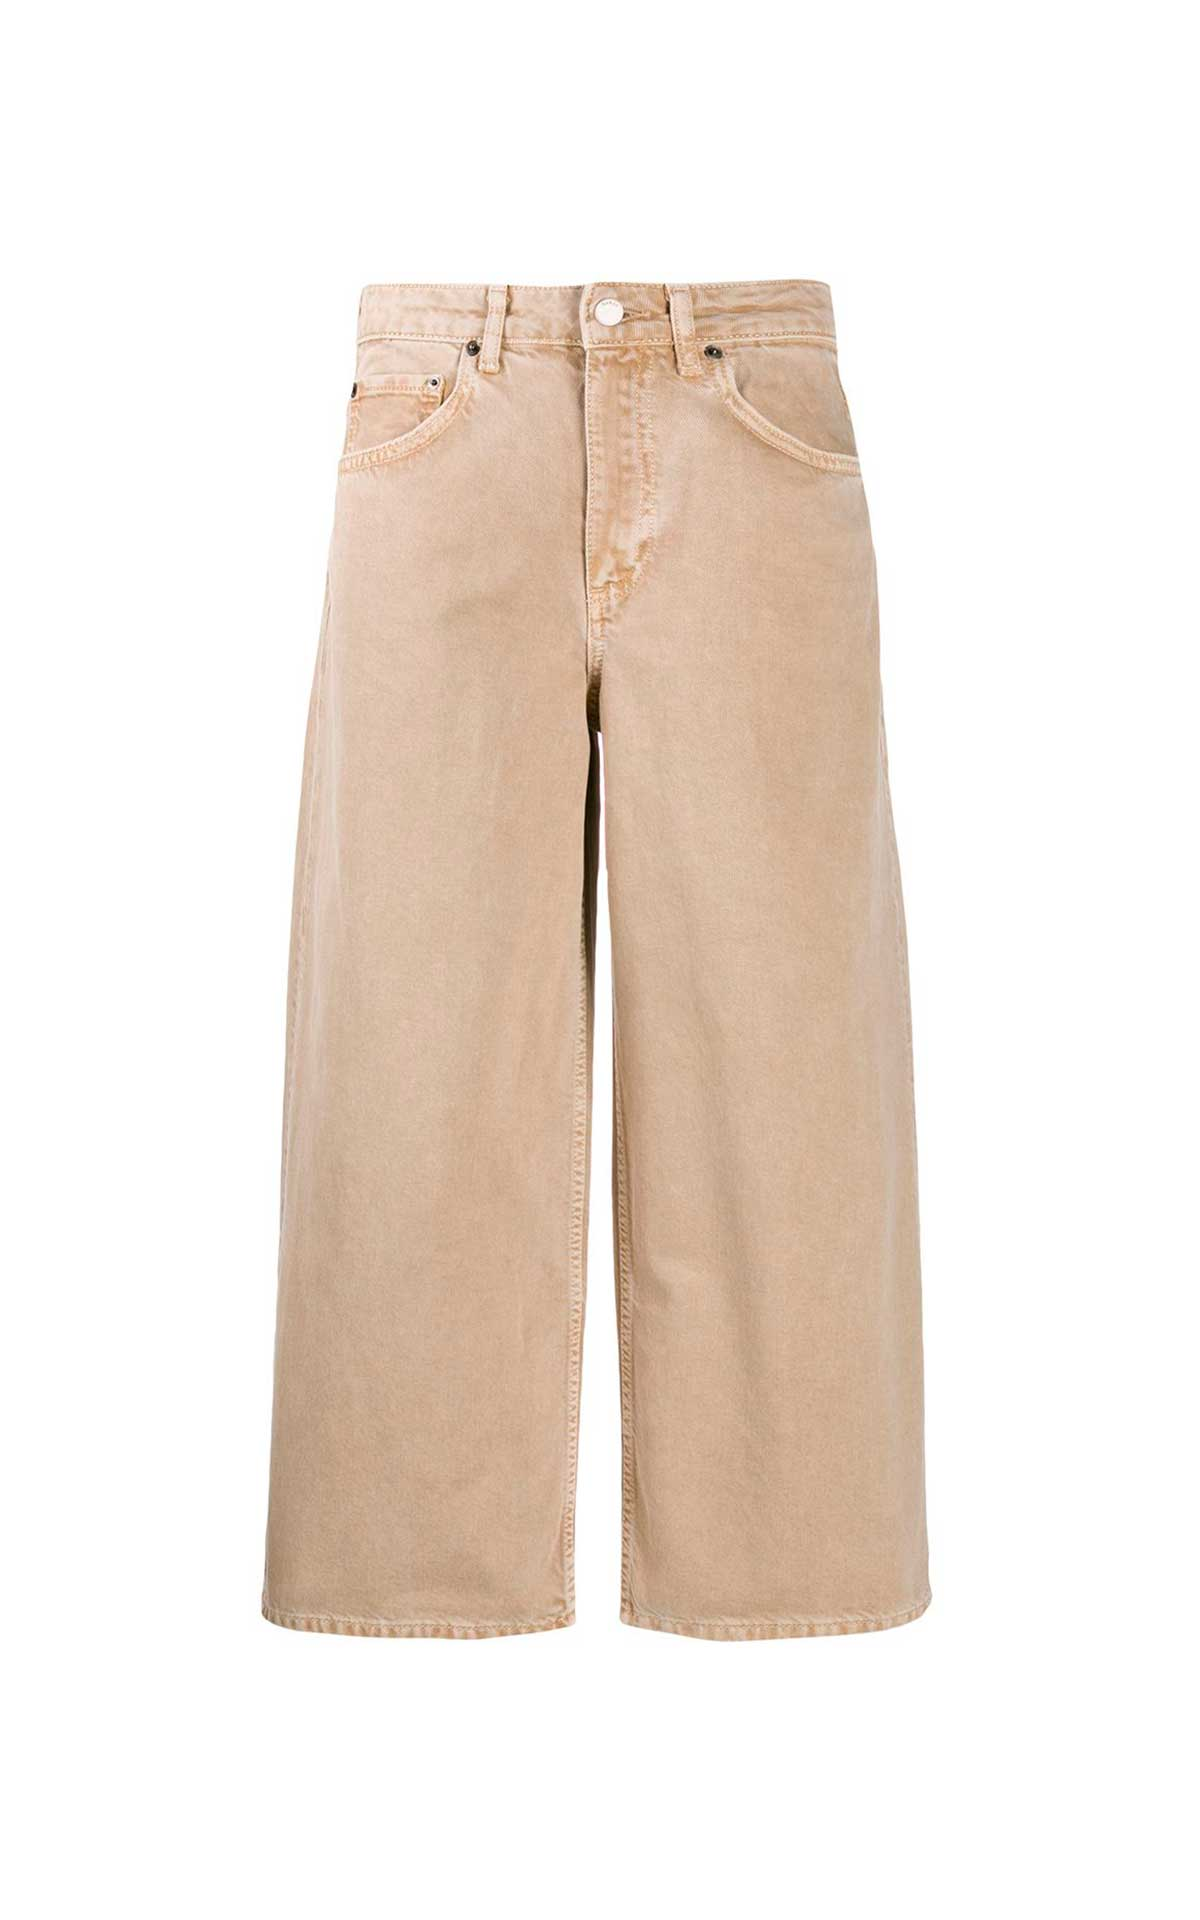 Pantalón denim beige ba&sh